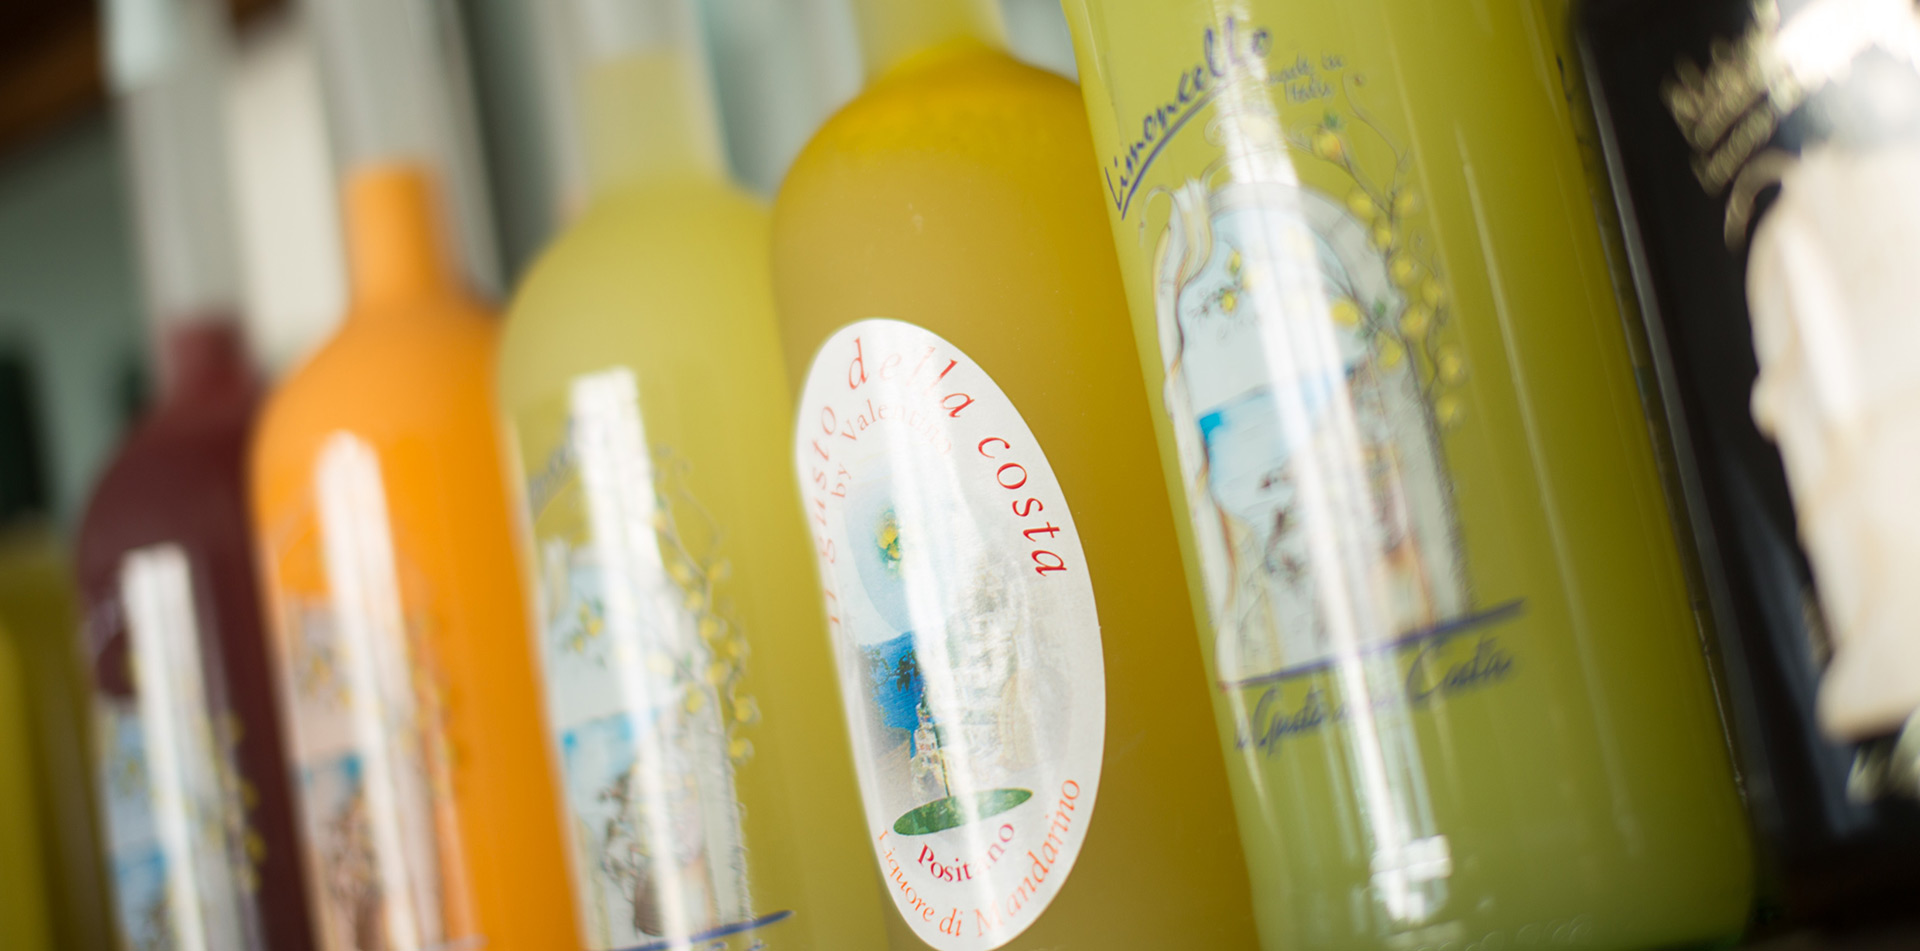 Europe Italy Amalfi Coast Positano fresh lemon bottled limoncello for sale in local store - luxury vacation destinations